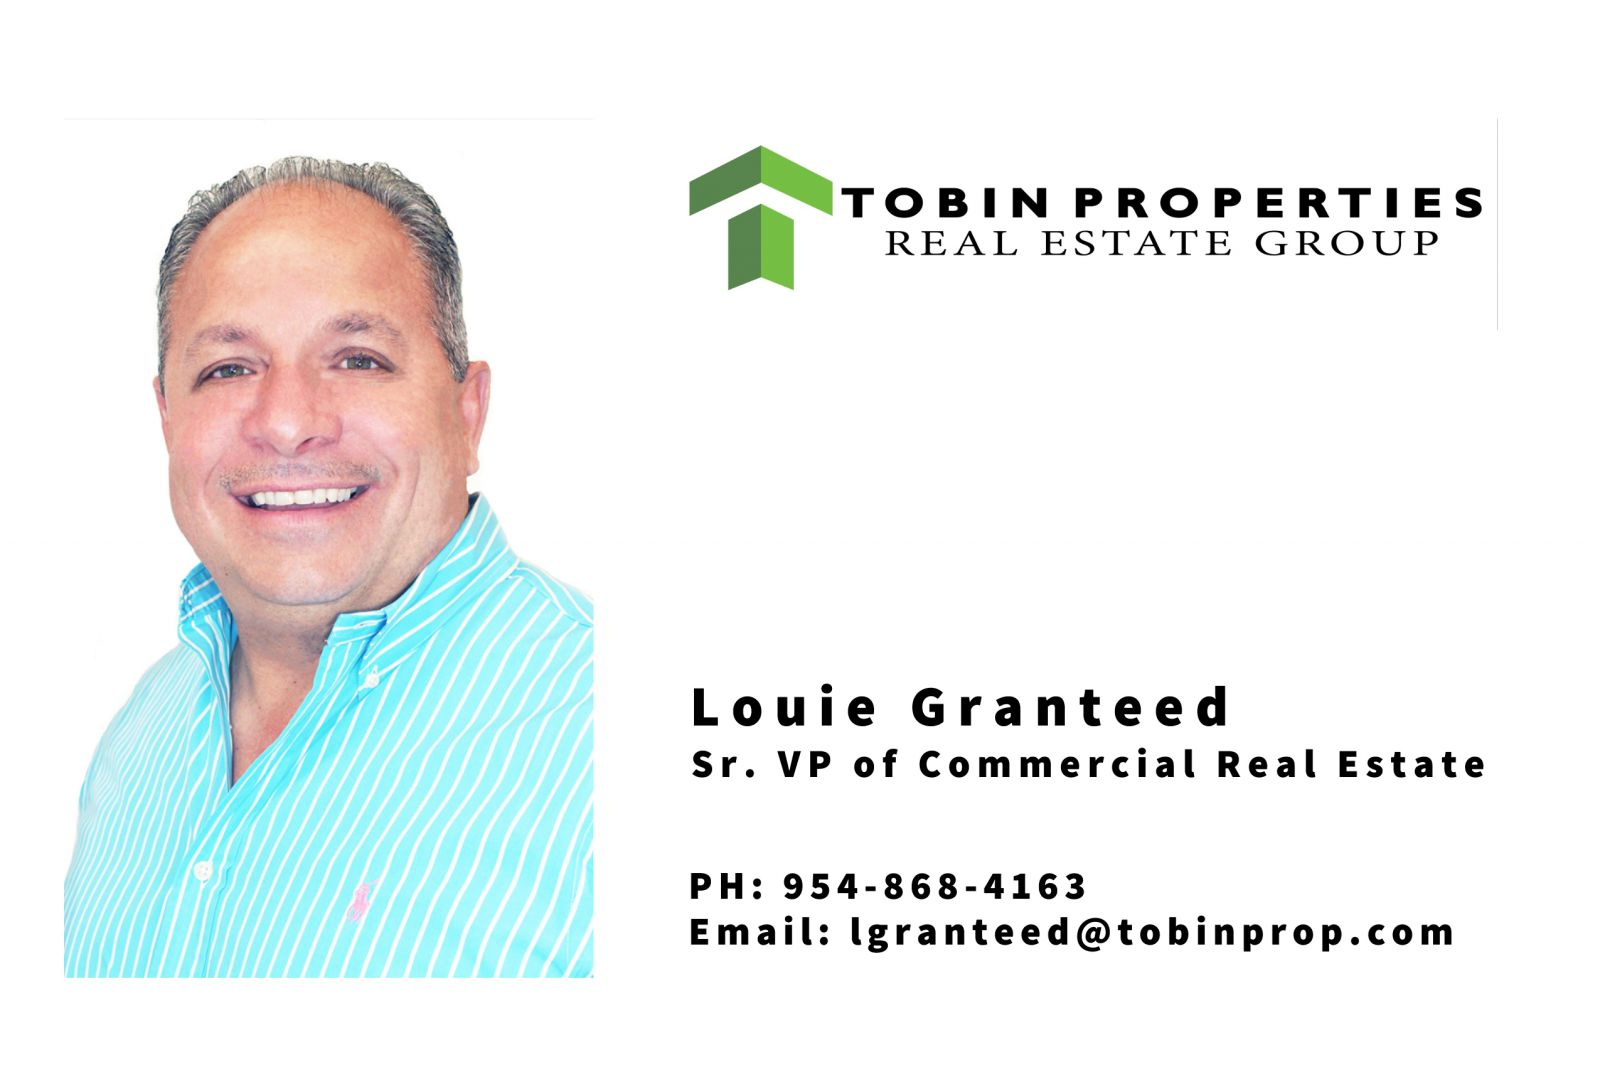 image of Louie Granteed, Sr VP of Commercial Real Estate Group